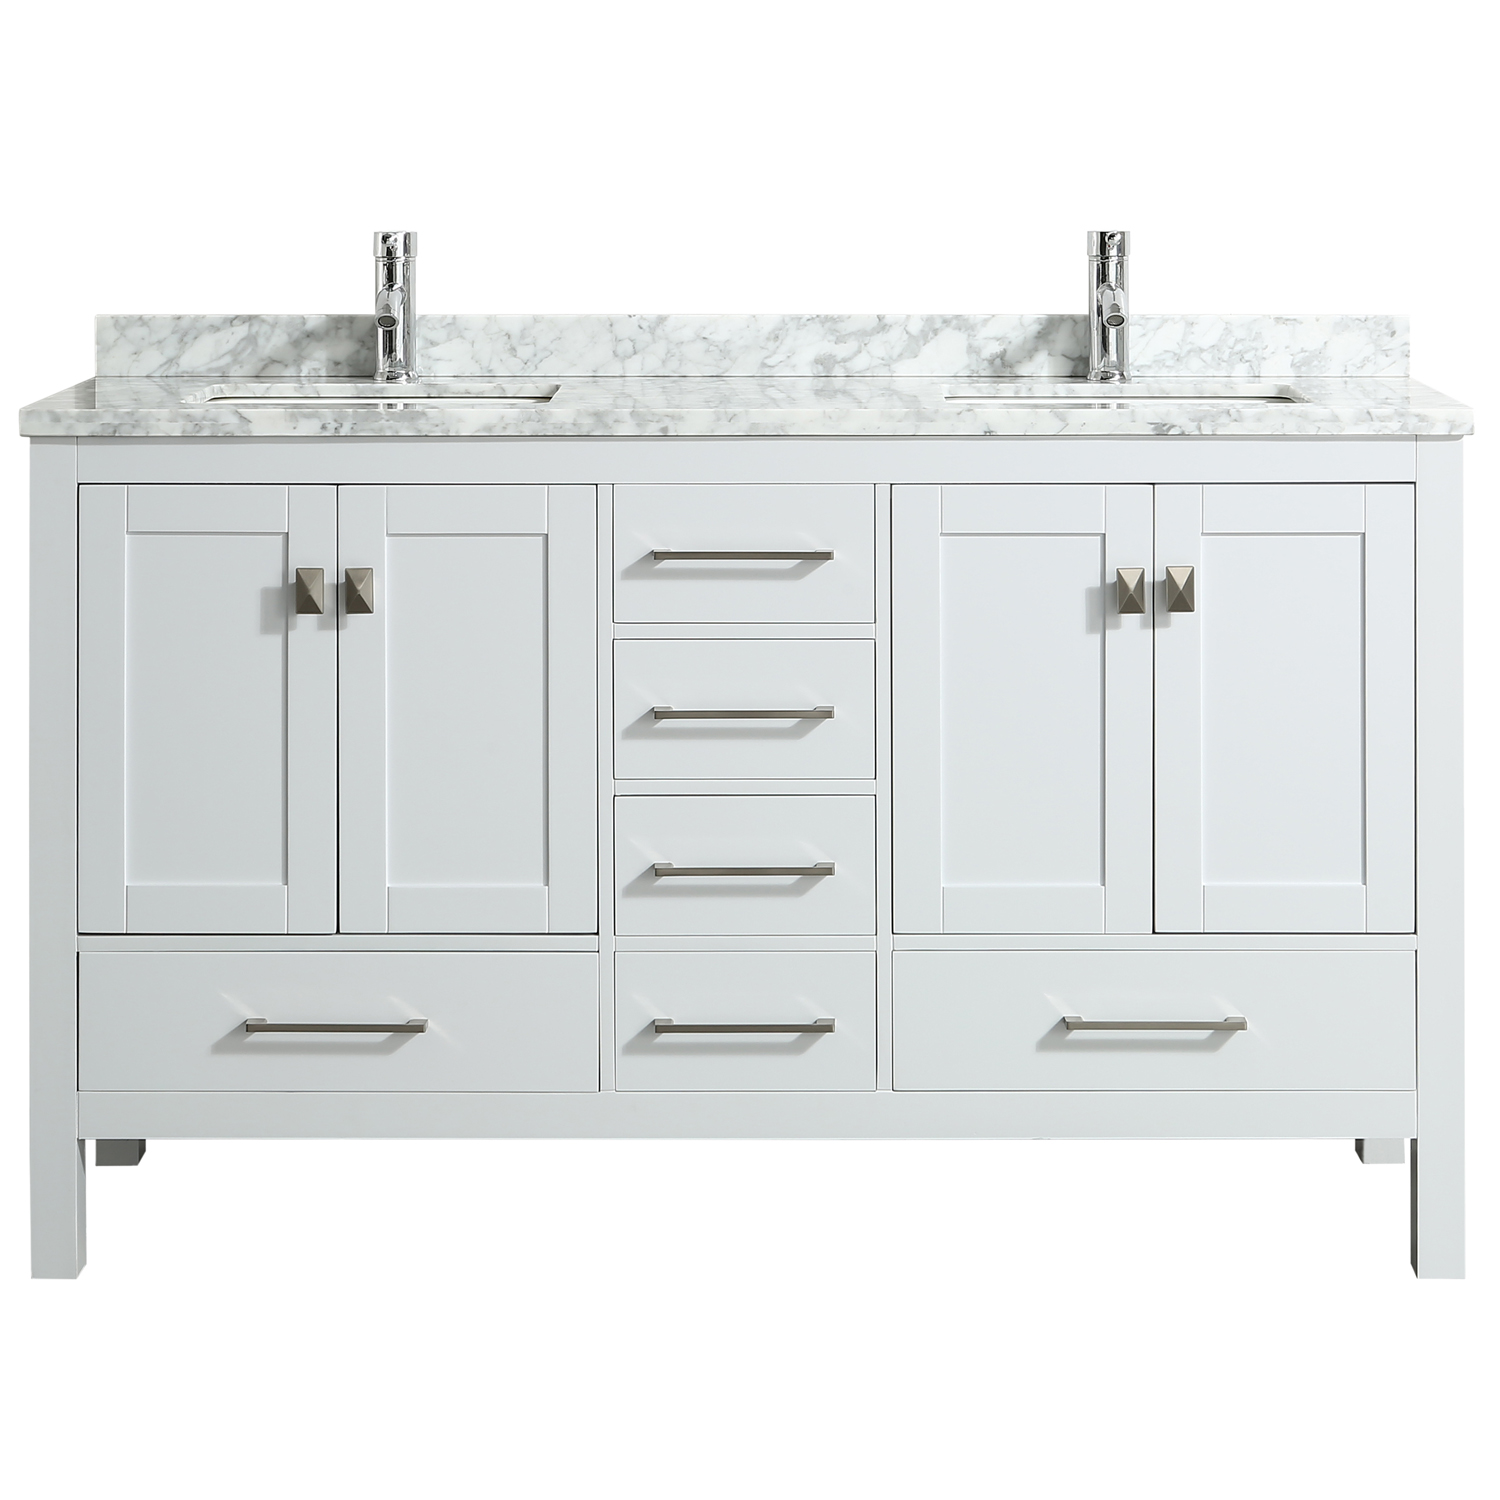 Eviva London 60 X 18 Transitional White Bathroom Vanity With White Carrara Marble And Double Porcelain Sinks Decors Us